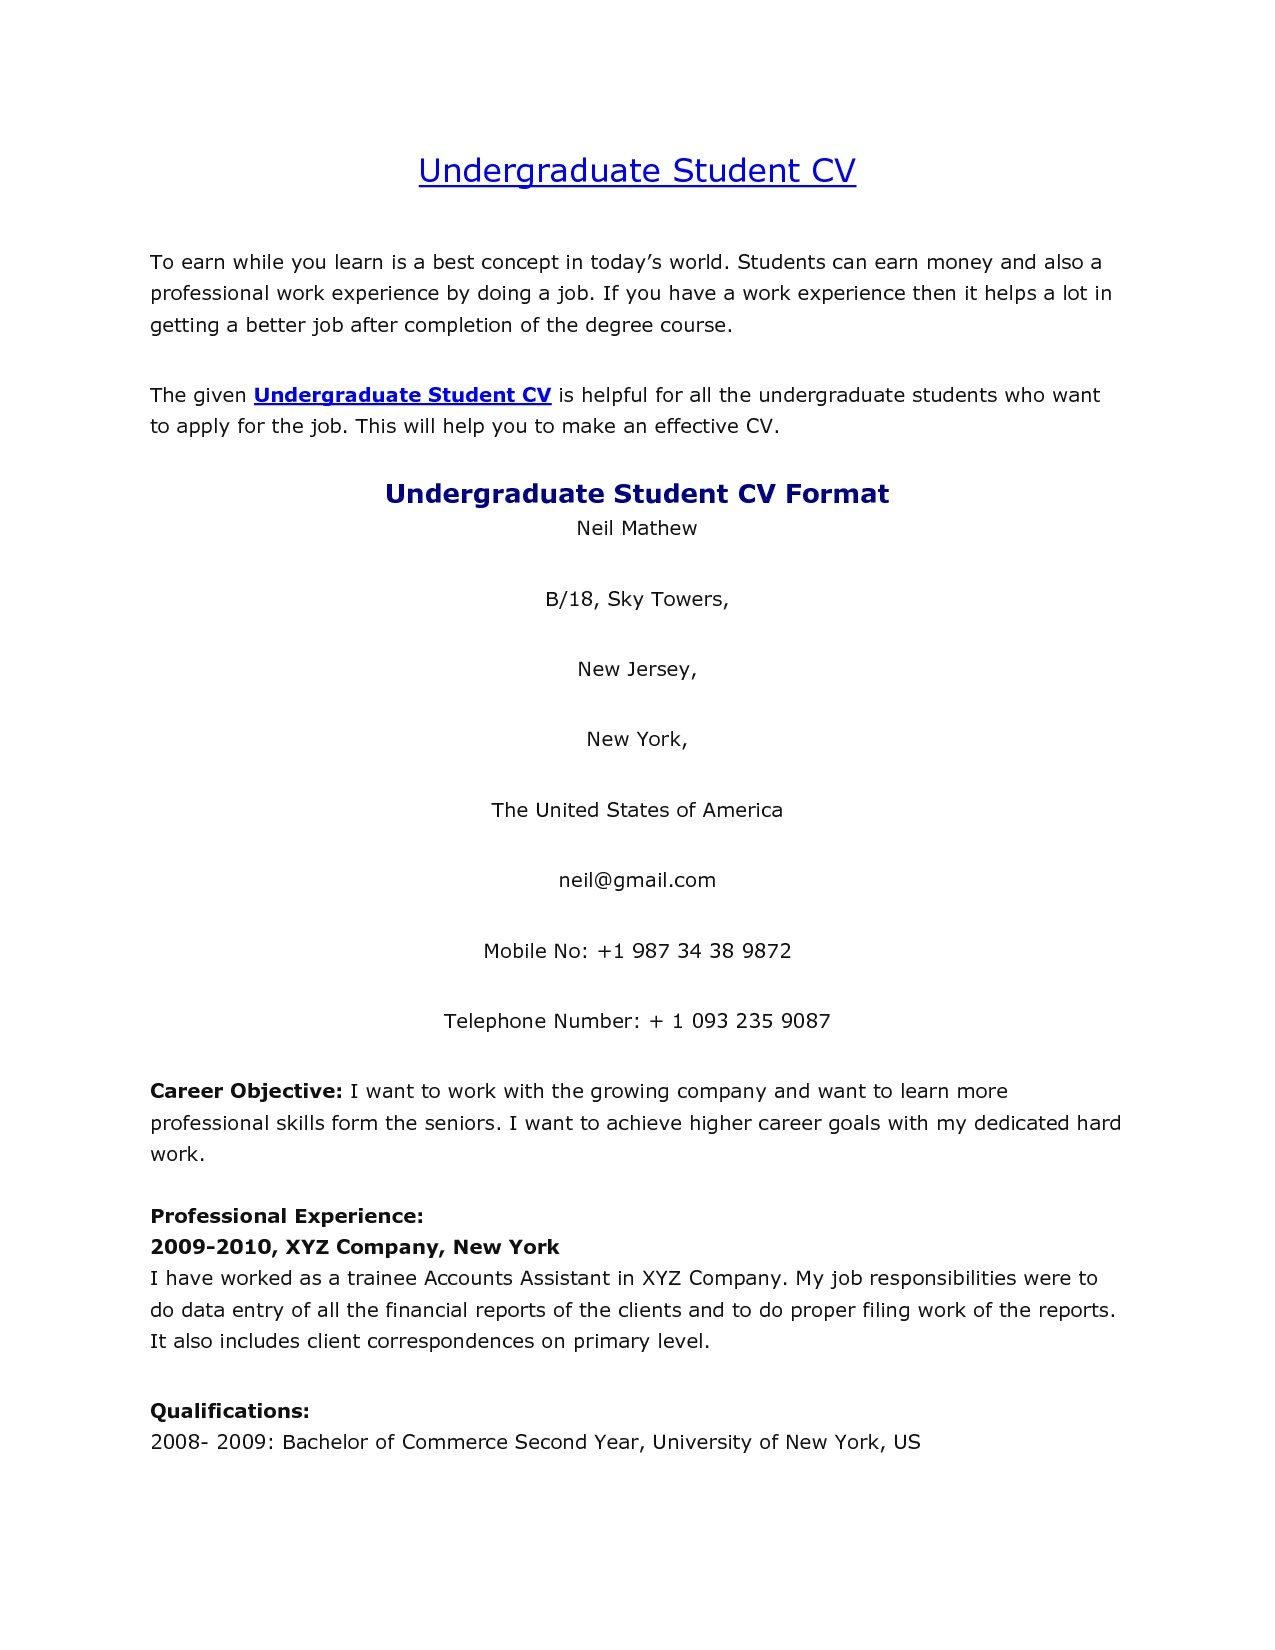 Sample Resume Format For Undergraduate Students Undergraduate Student Cv Http Jobresumesample 1058